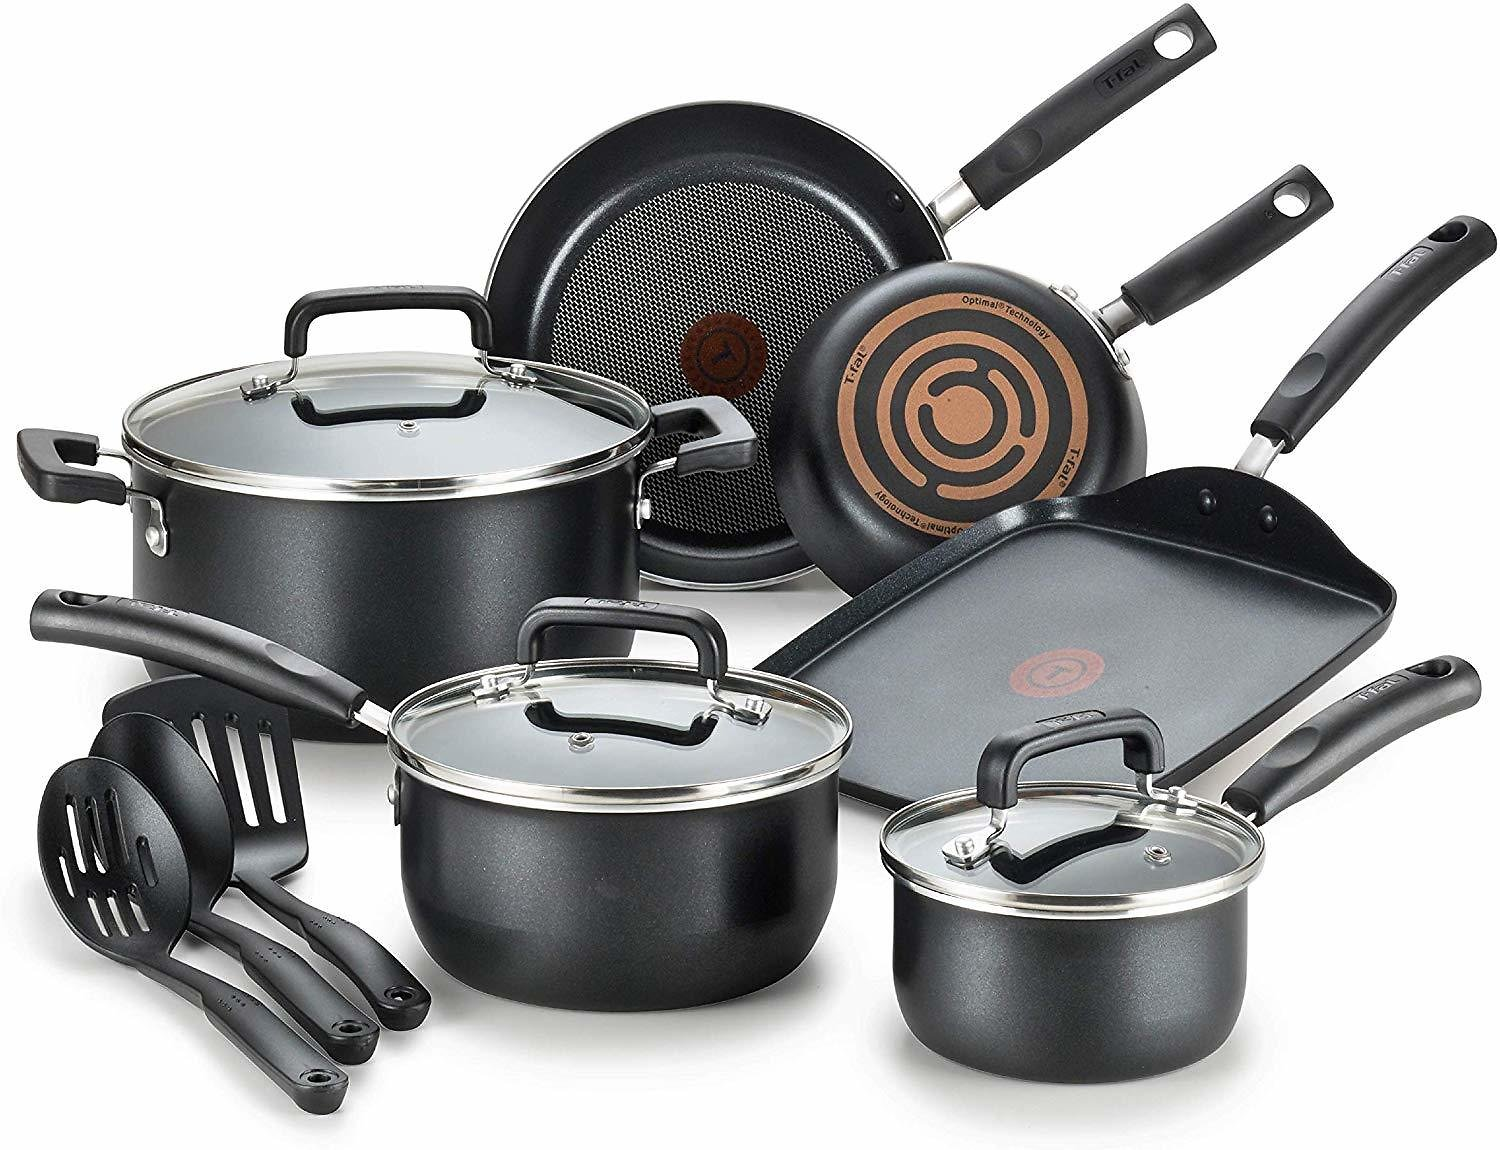 Save 19%   Signature Nonstick Dishwasher Safe Cookware Set, Nonstick Pots and Pans Set, Thermo-Spot Heat Indicator, 12 Piece, Bl